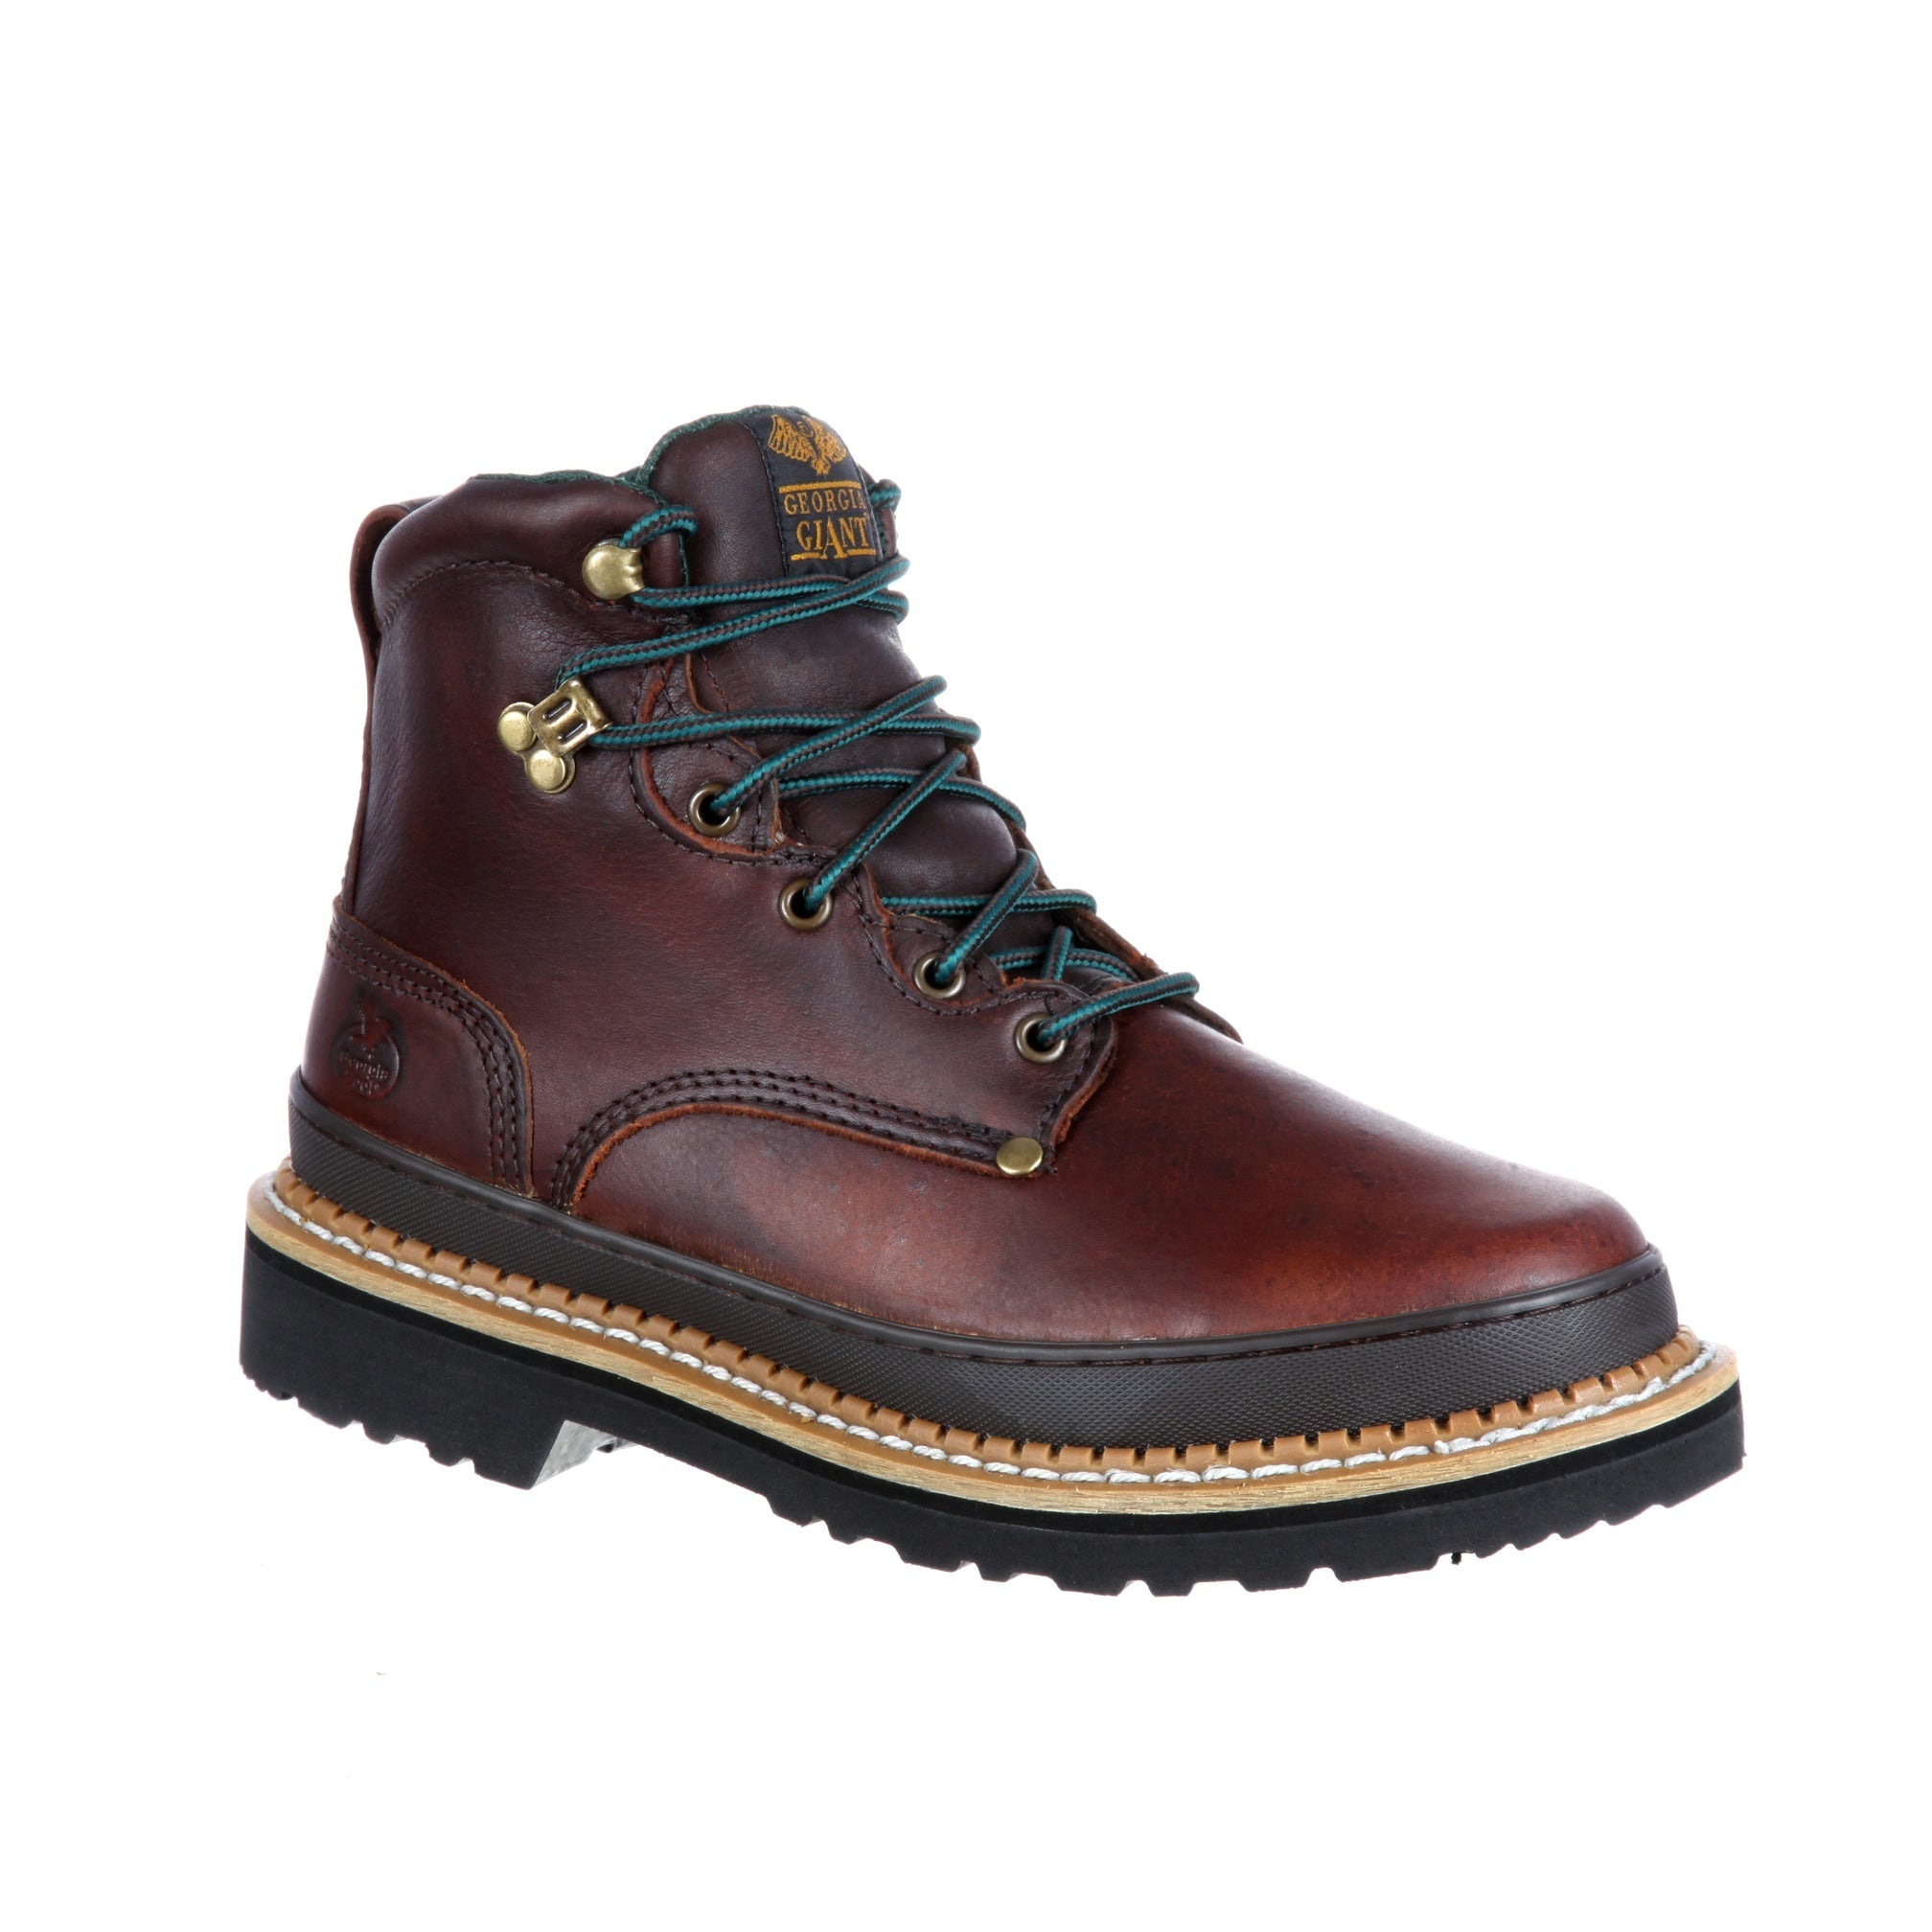 "Georgia Boot ""Georgia Giant"" G6374 Brown Leather Steel Toe Work Boot"